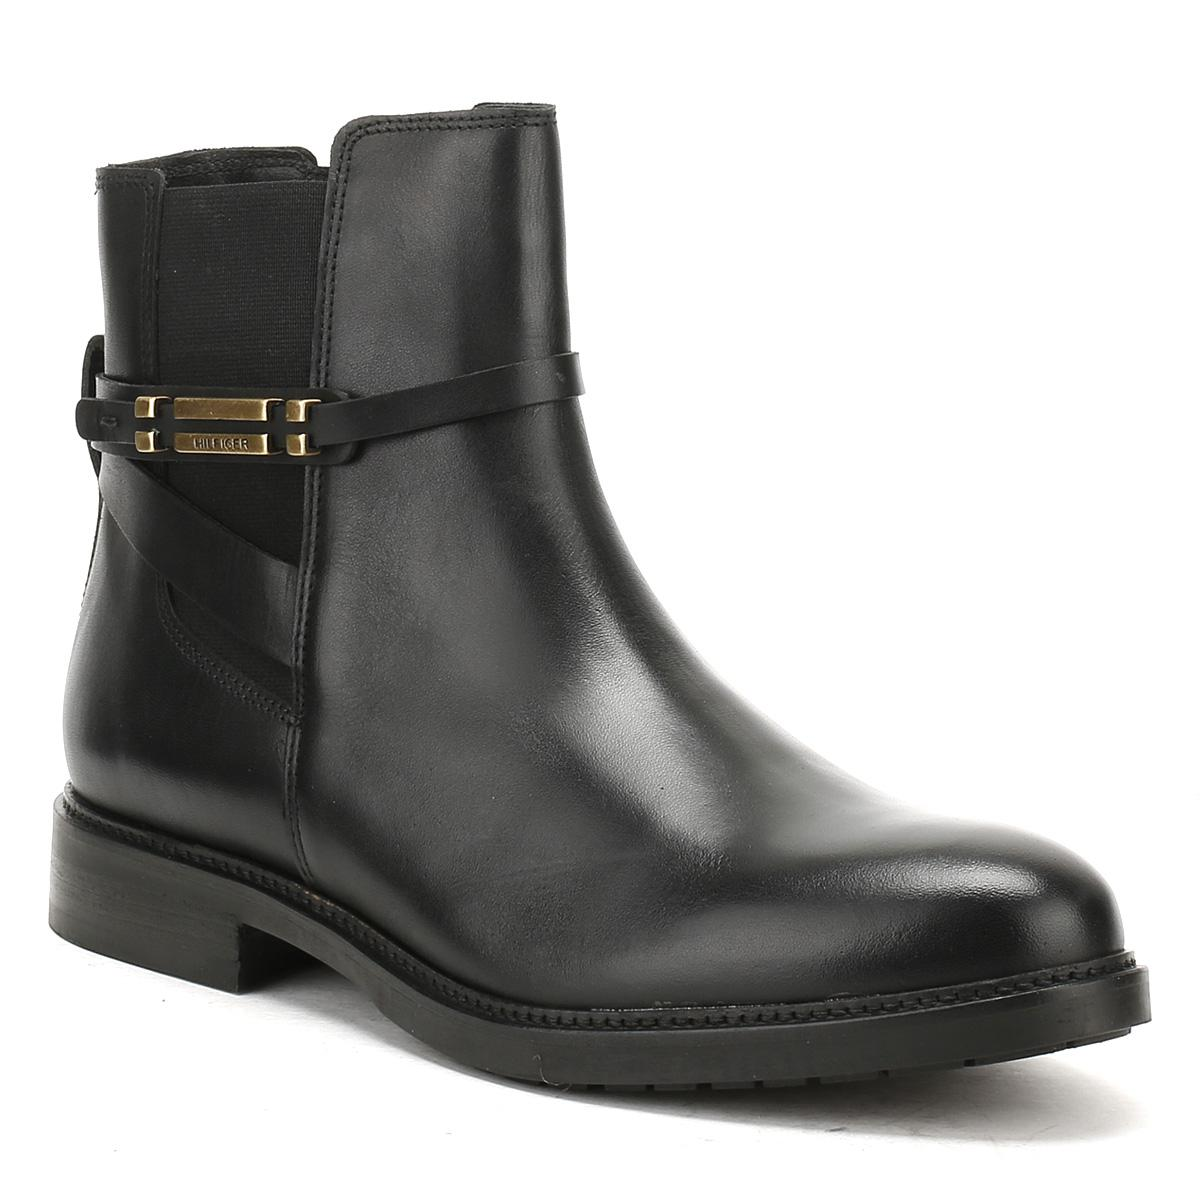 ac1d8eb88e0 Tommy Hilfiger Womens Black Holly 15a Ankle Boots